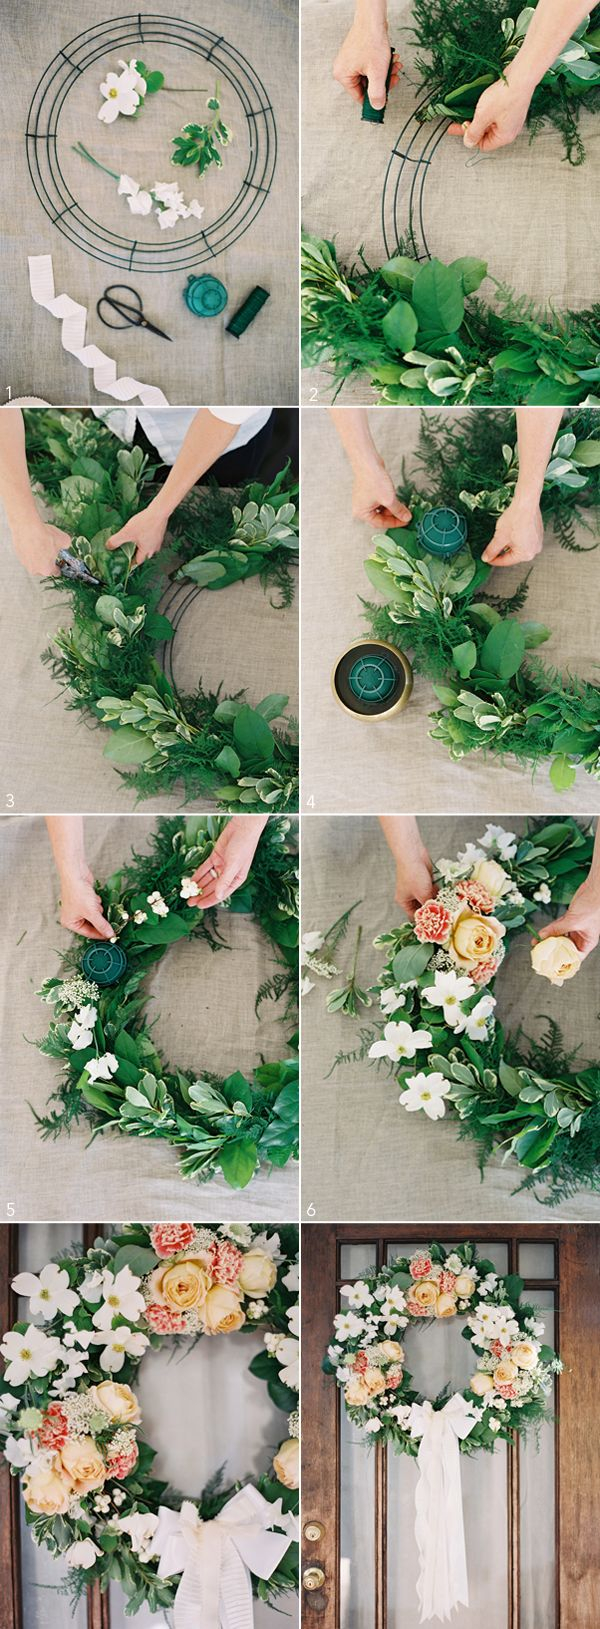 Wedding Dyi Decorations 20 Creative Diy Wedding Ideas For 2016 Spring